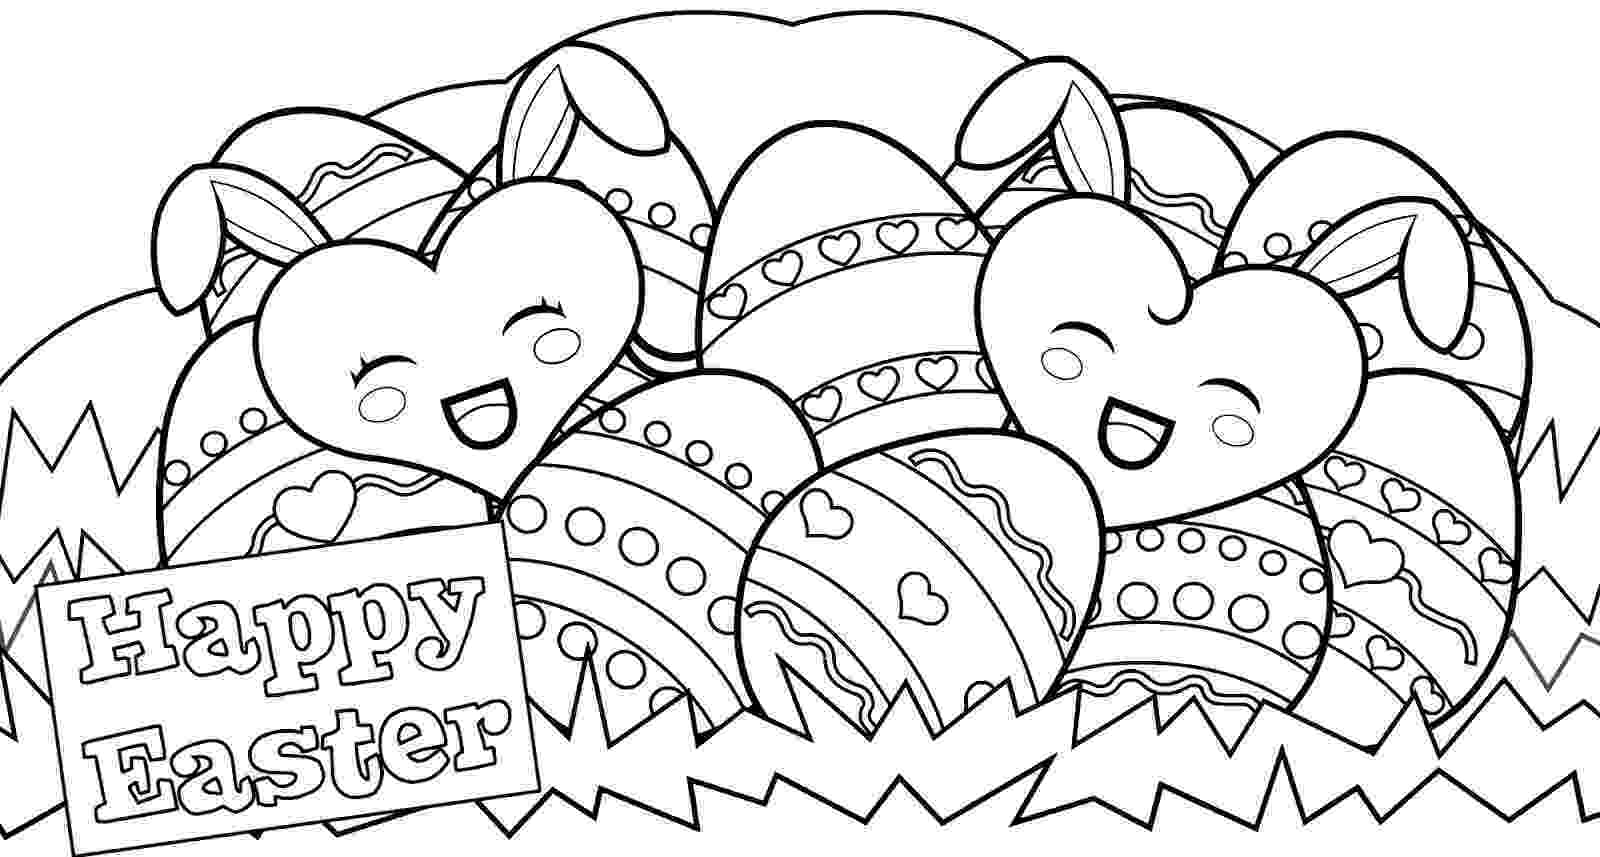 easter colouring pics free printable easter egg coloring pages for kids easter pics colouring